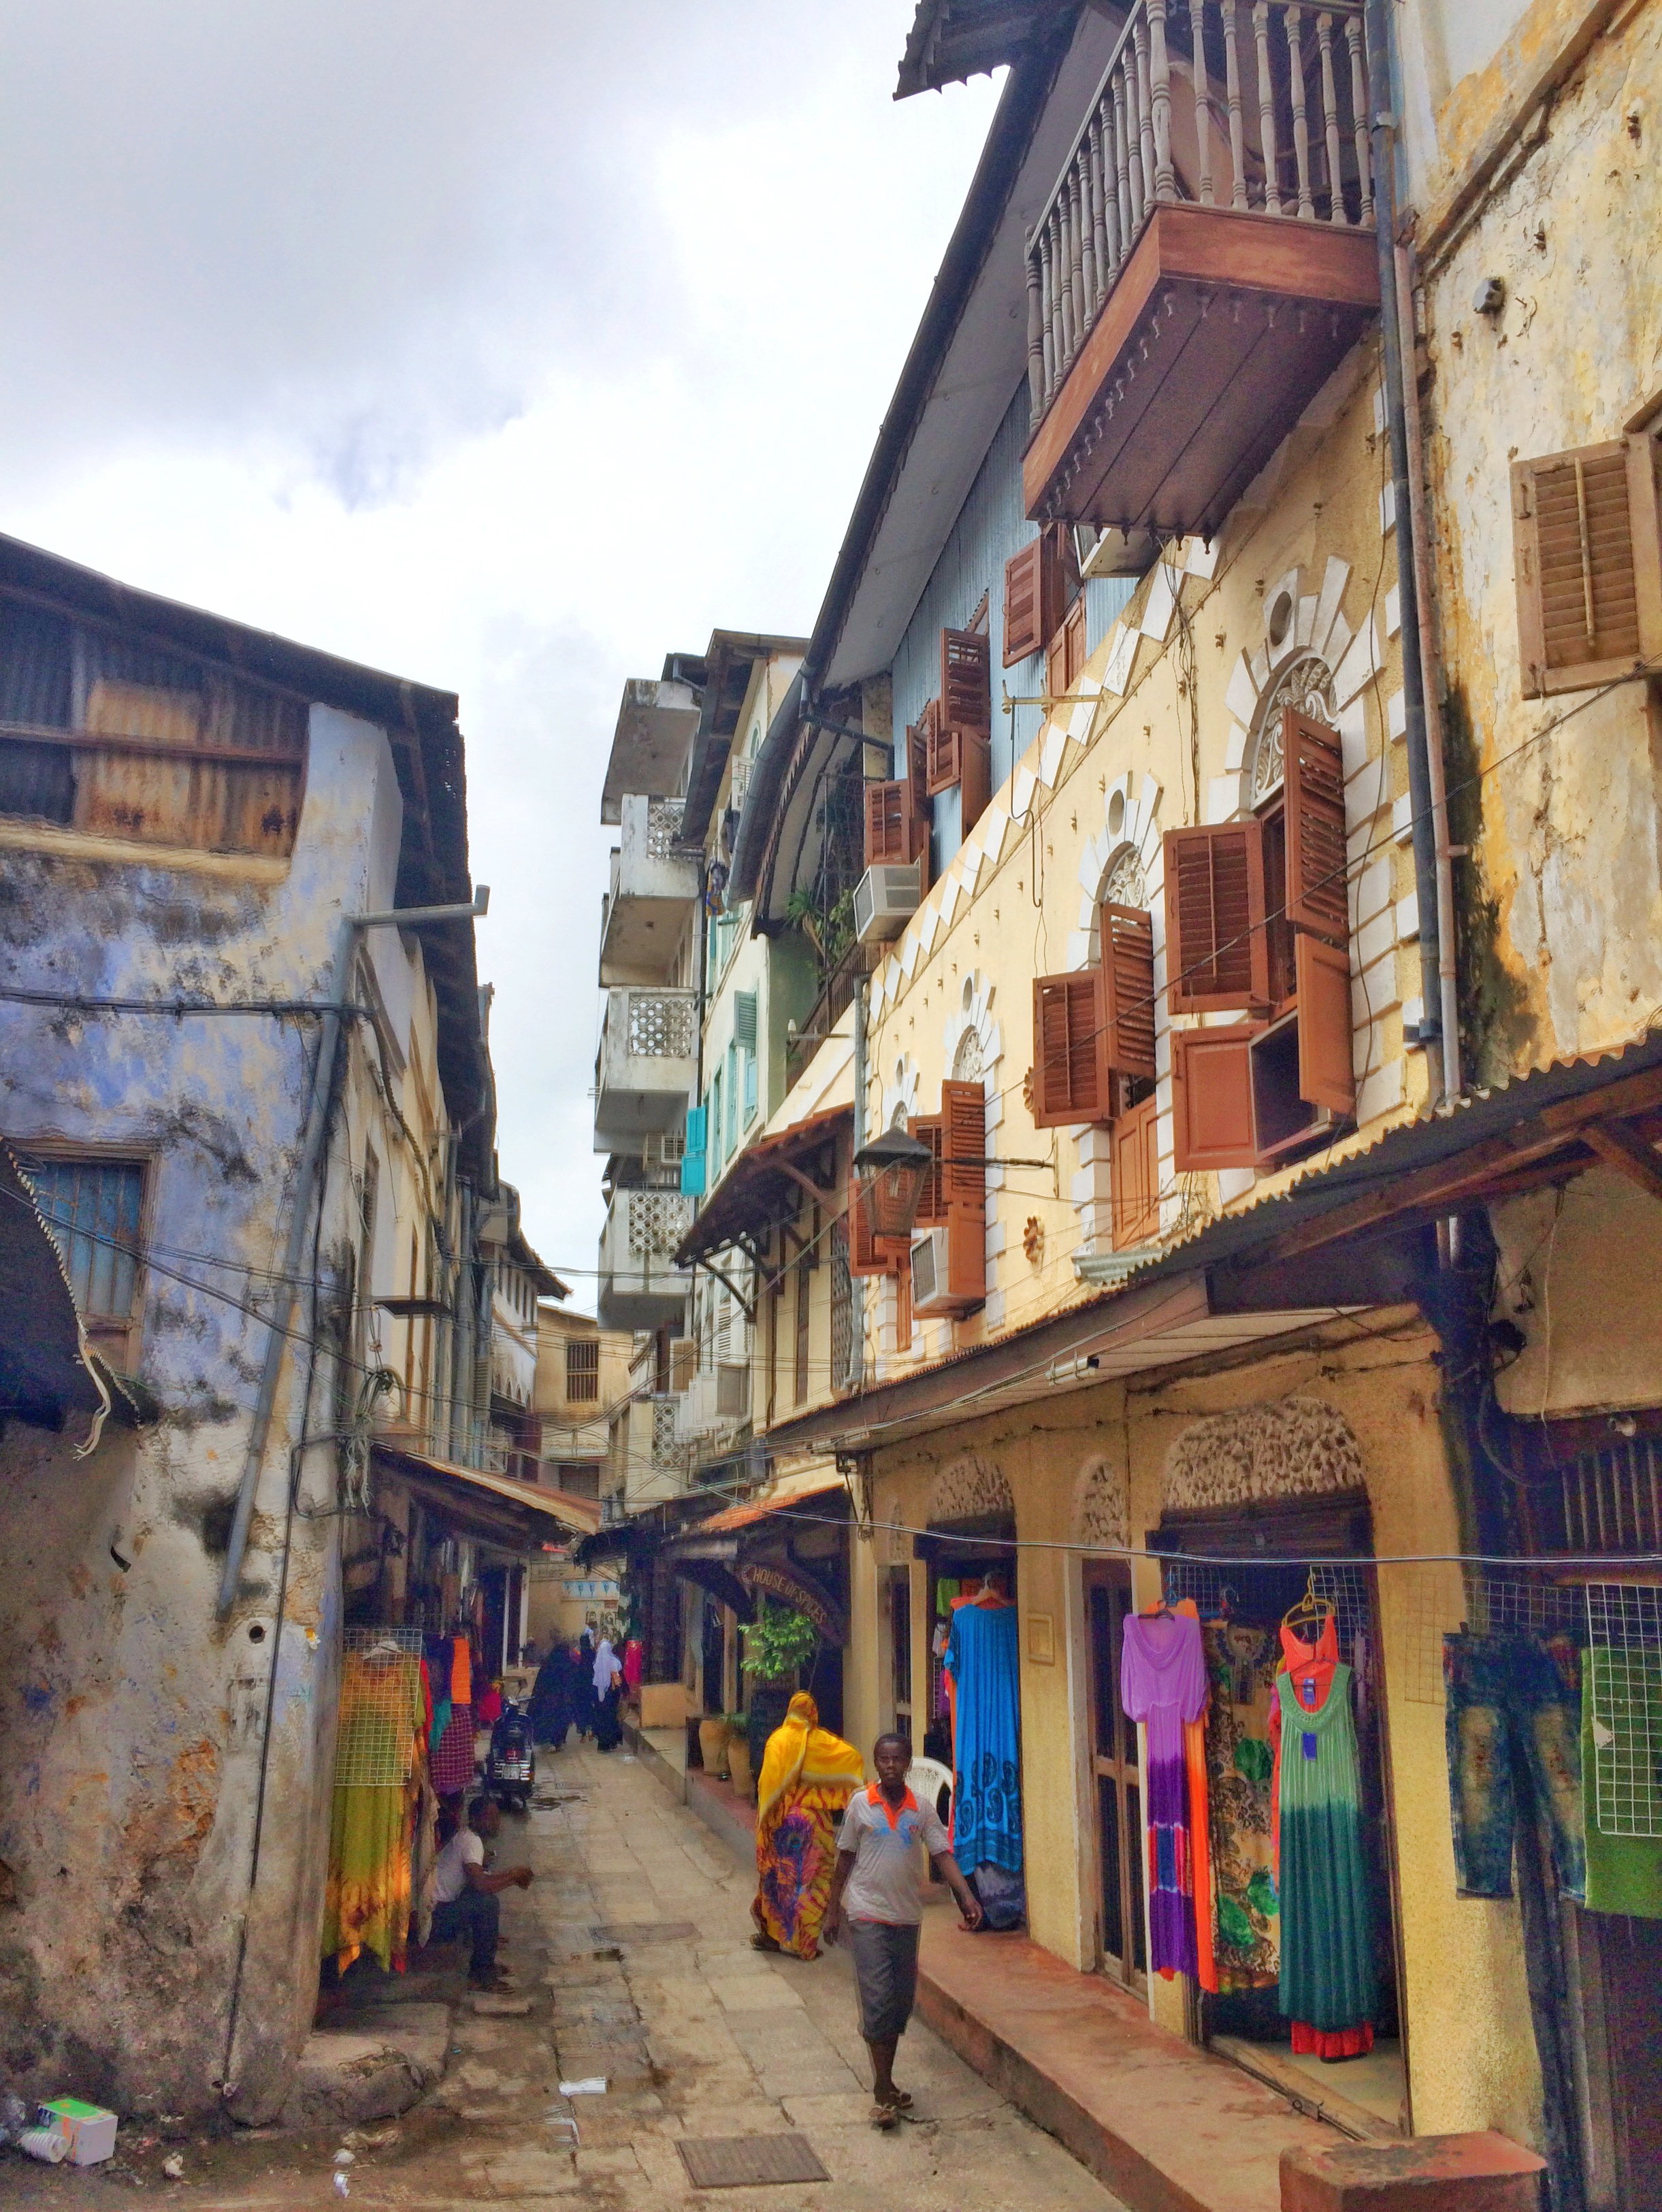 More streets of Stone Town